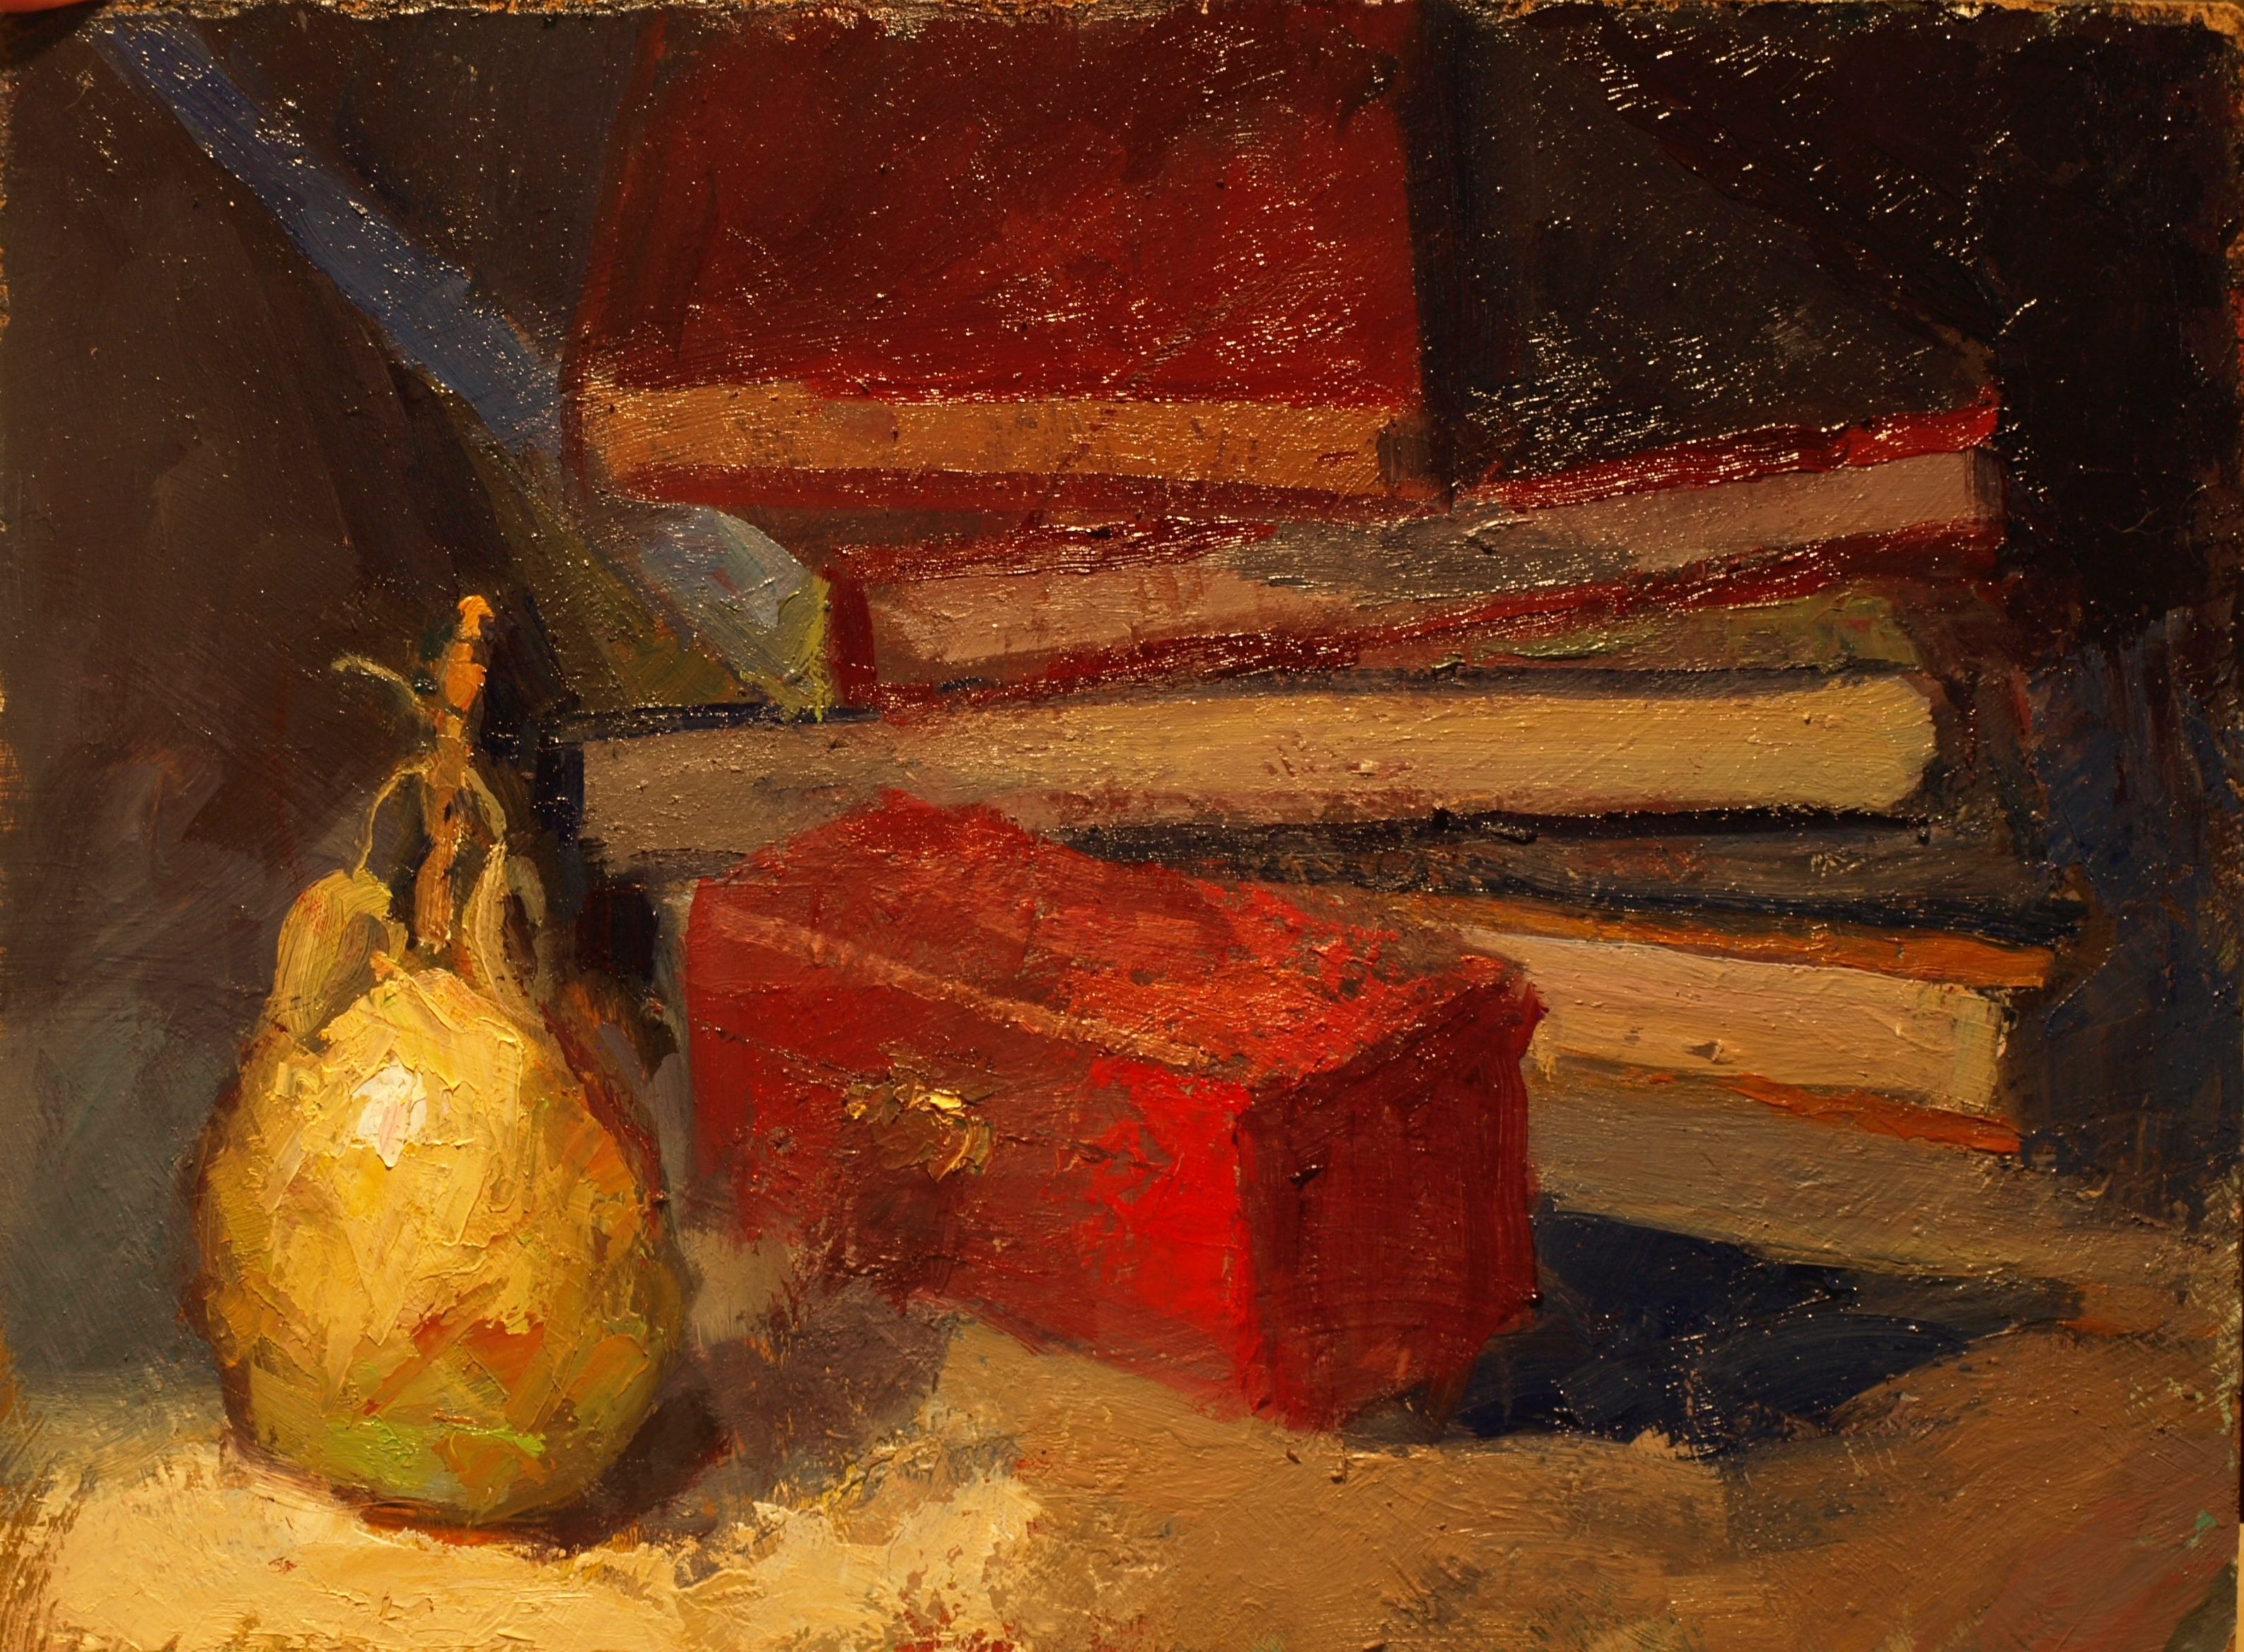 Pear and Books, Oil on Panel, 12 x 16 Inches, by Susan Grisell, $300